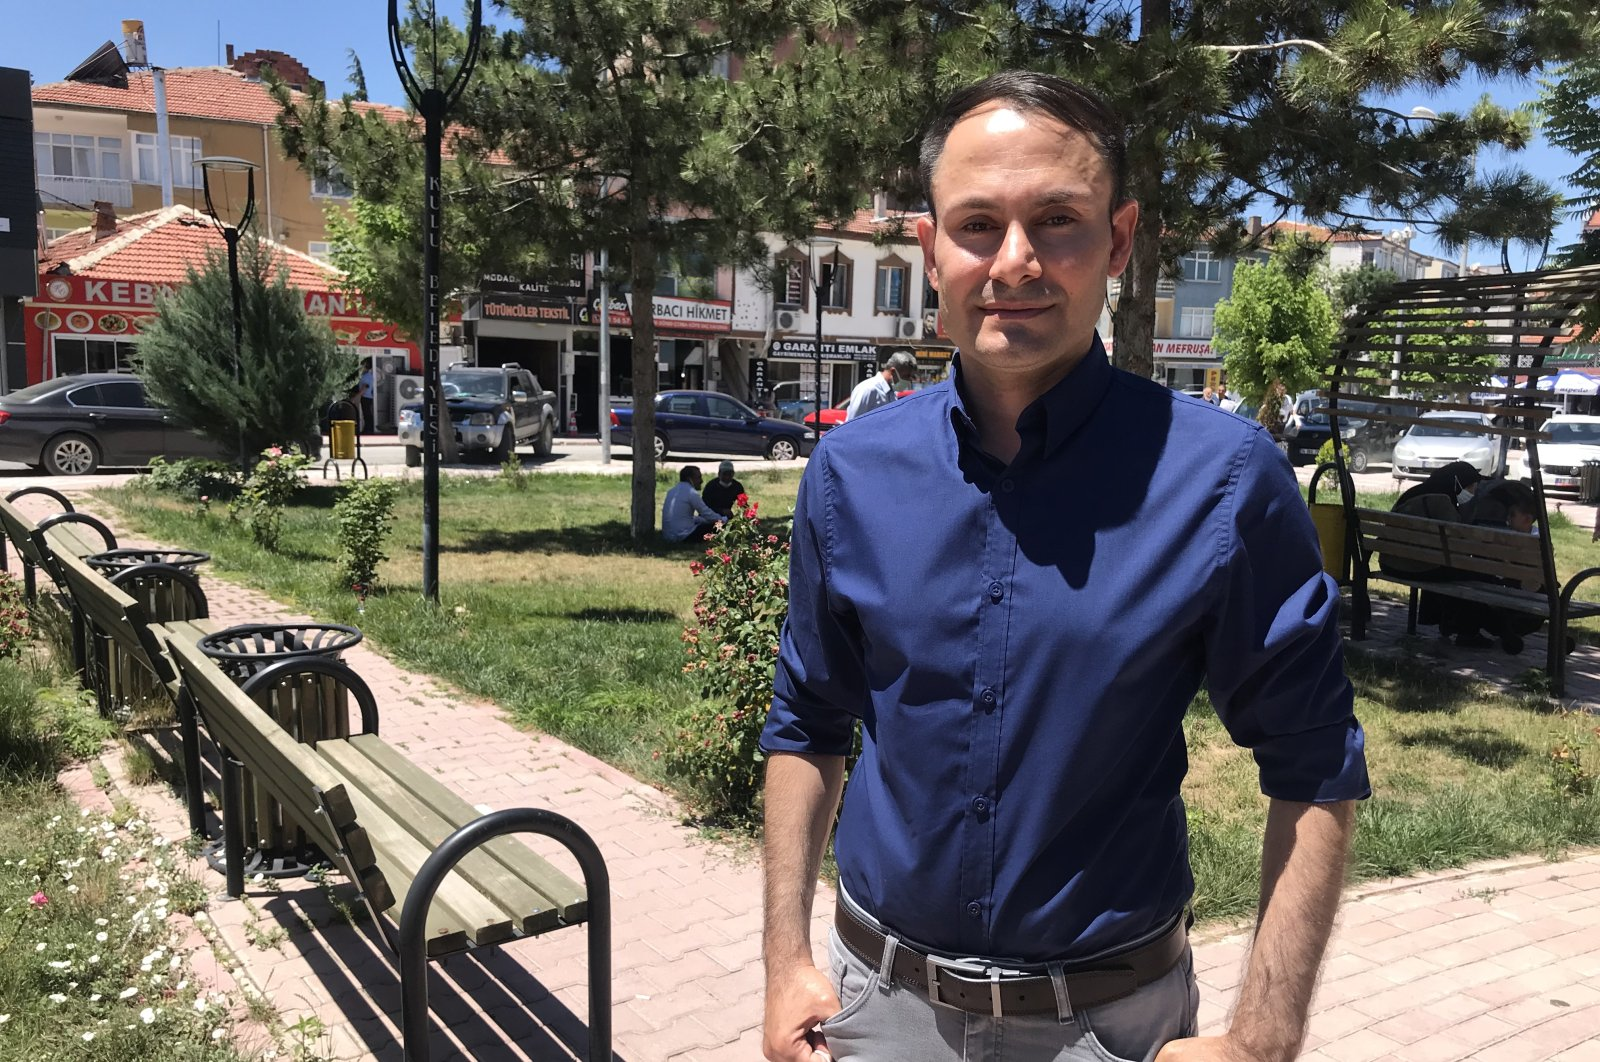 Turkish Swedish politician Mikail Yüksel poses for a photo in the Kulu district of Turkey's central Konya province, July 6, 2021. (AA Photo)